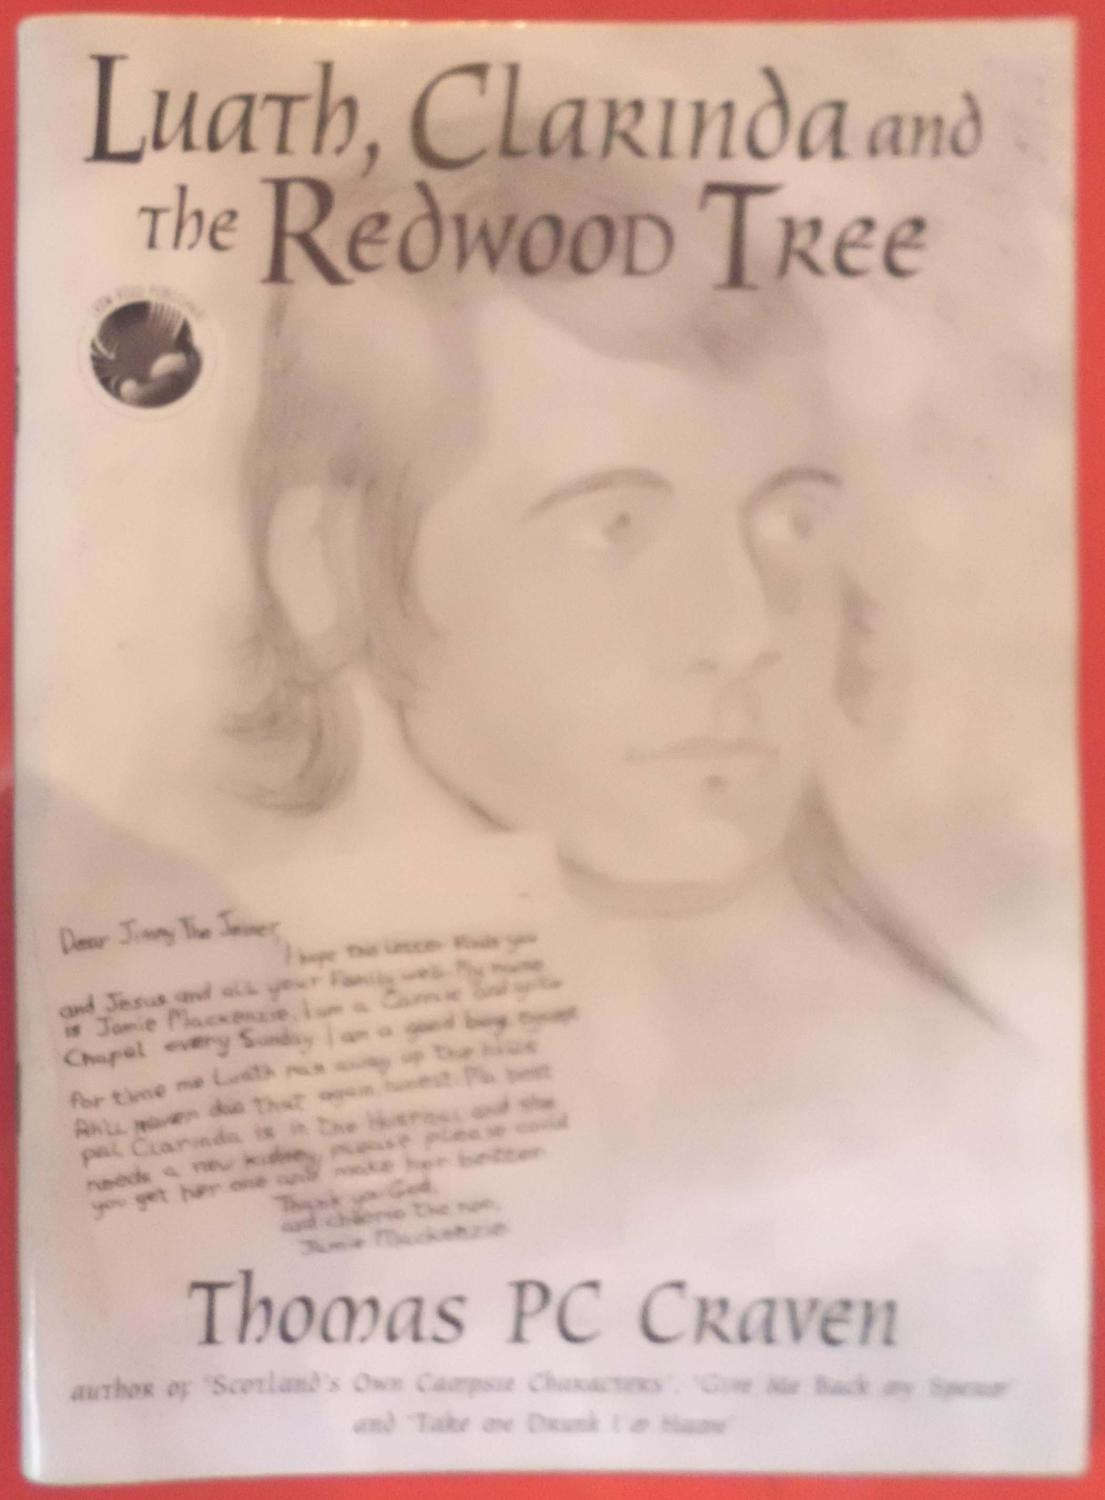 Luath, Calrinda and the Redwood Tree (Luath Books Book 1)